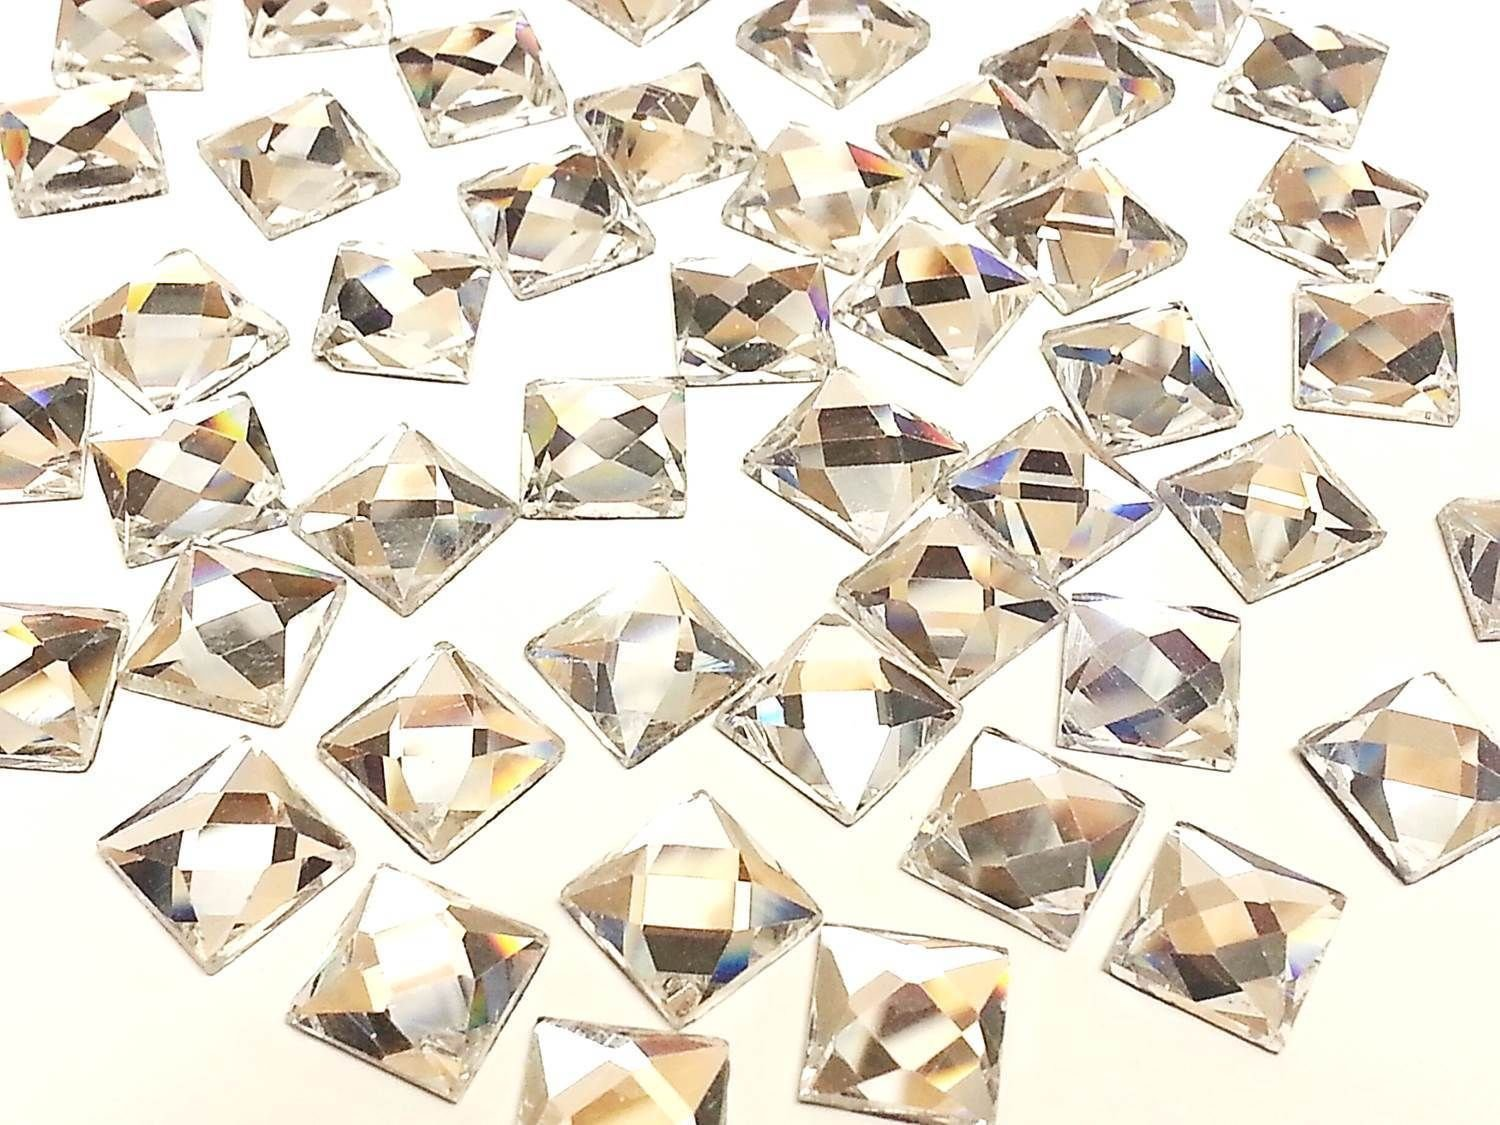 CraftbuddyUS SQ8- 50x 8mm Square Hot Fix Faceted Glass Crystal Rhinestone Diamante Gems Crystal & Gems